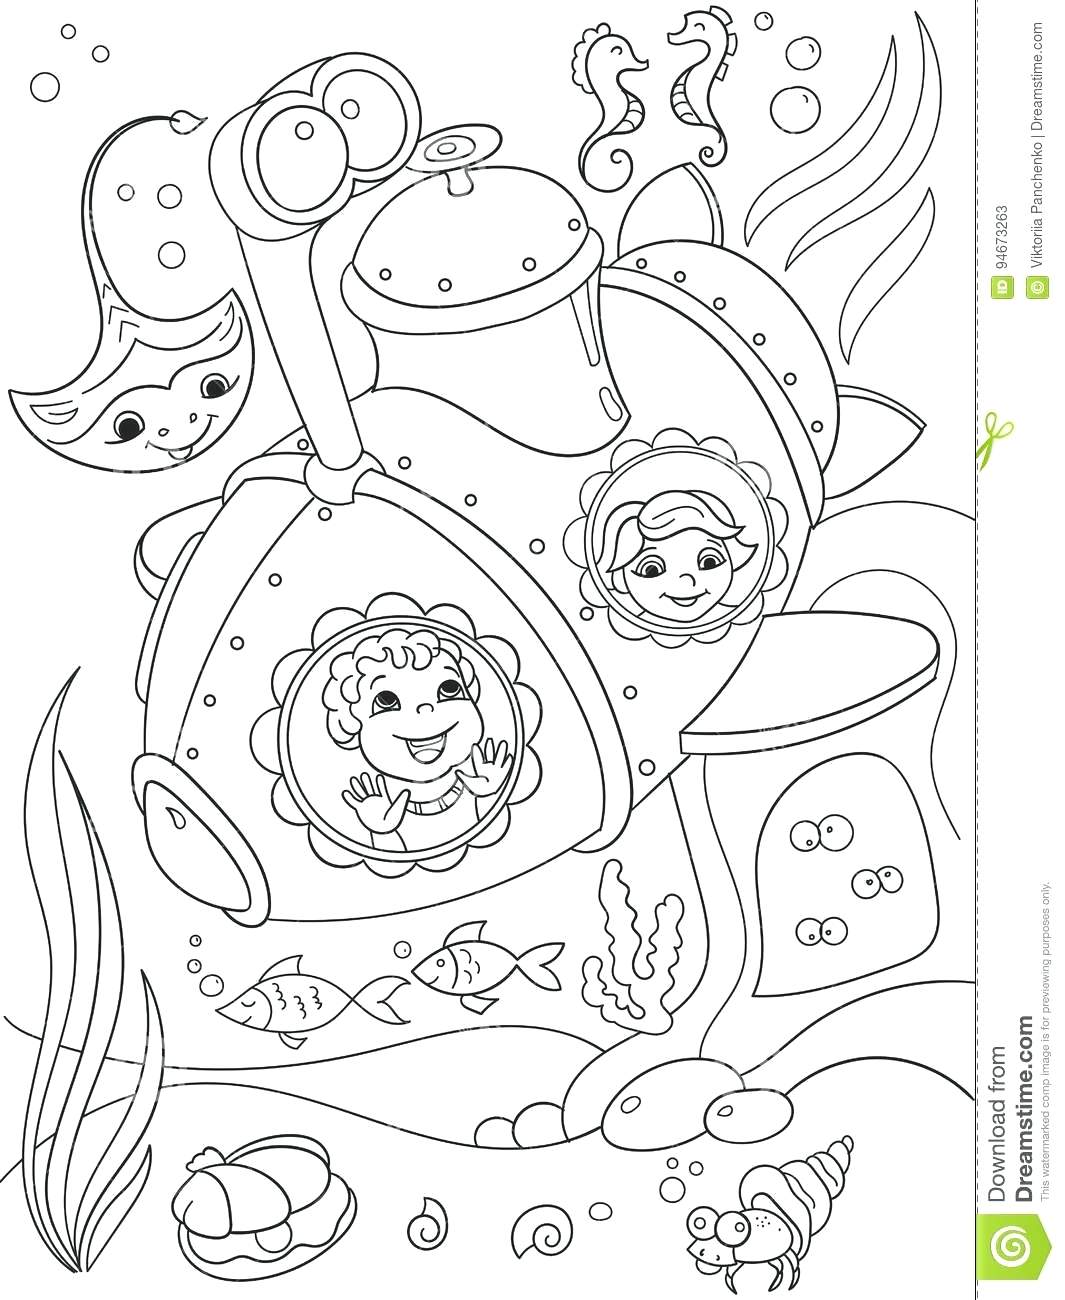 1065x1300 Coloring Submarine Coloring Pages Children Exploring